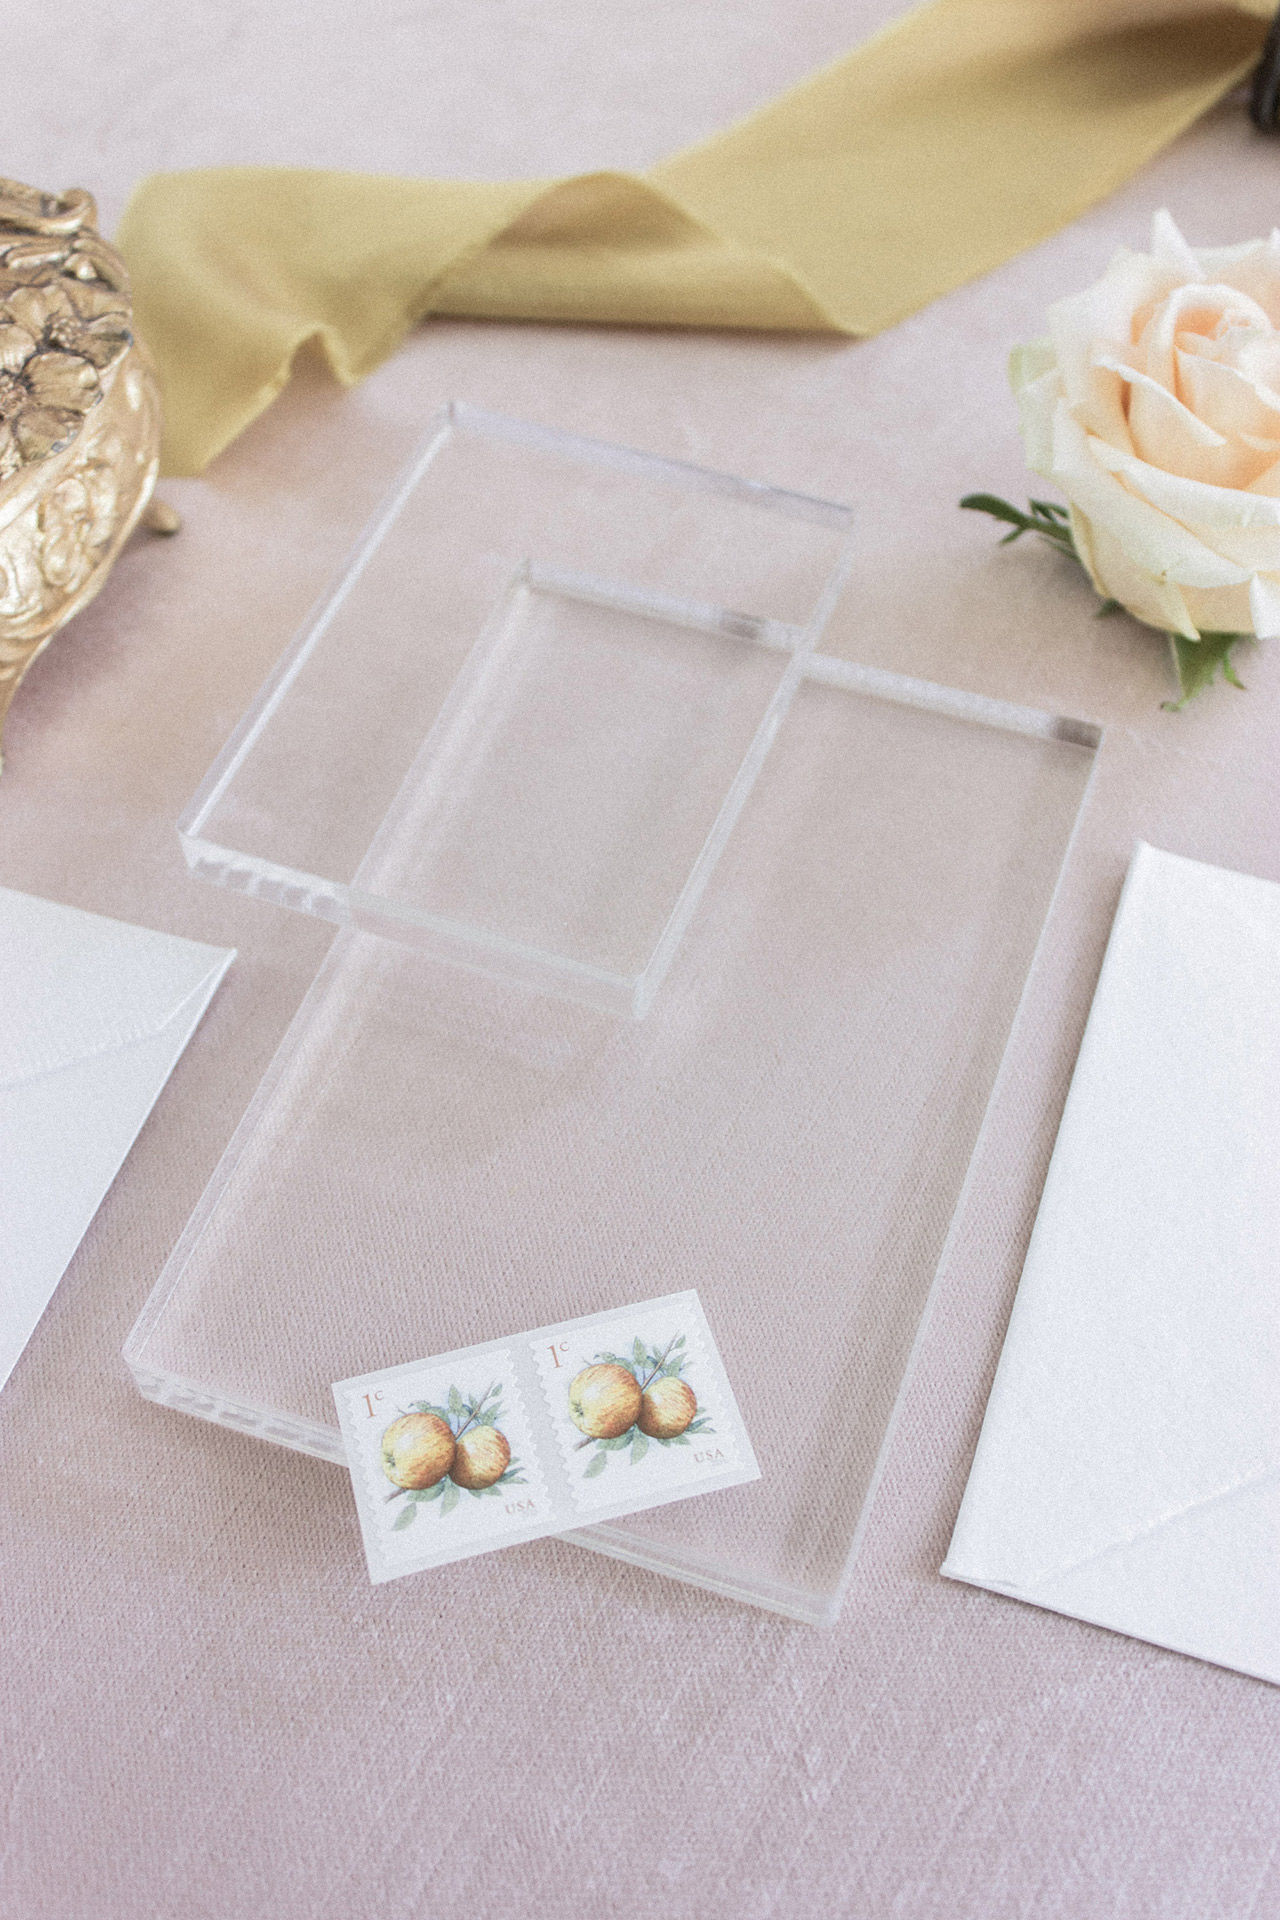 Styling Blocks for Stationery Flat Lays